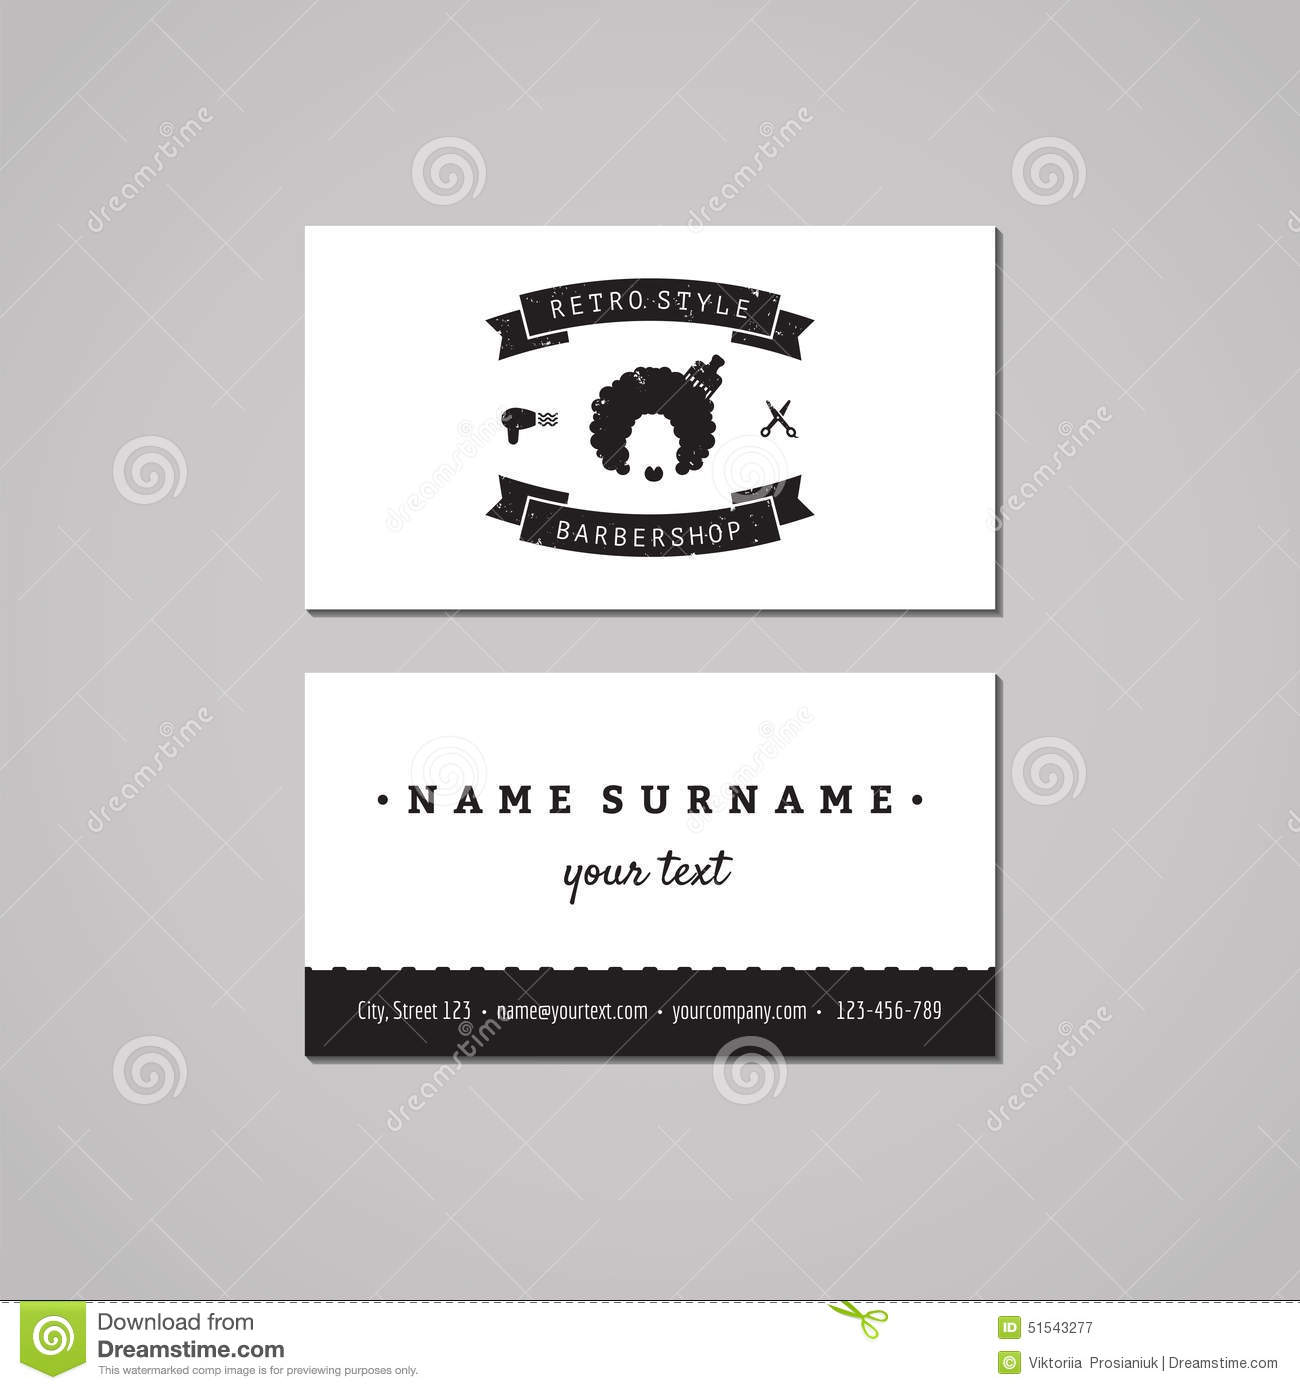 Barbershop Business Card Design Concept. Barbershop Logo With Afro ...